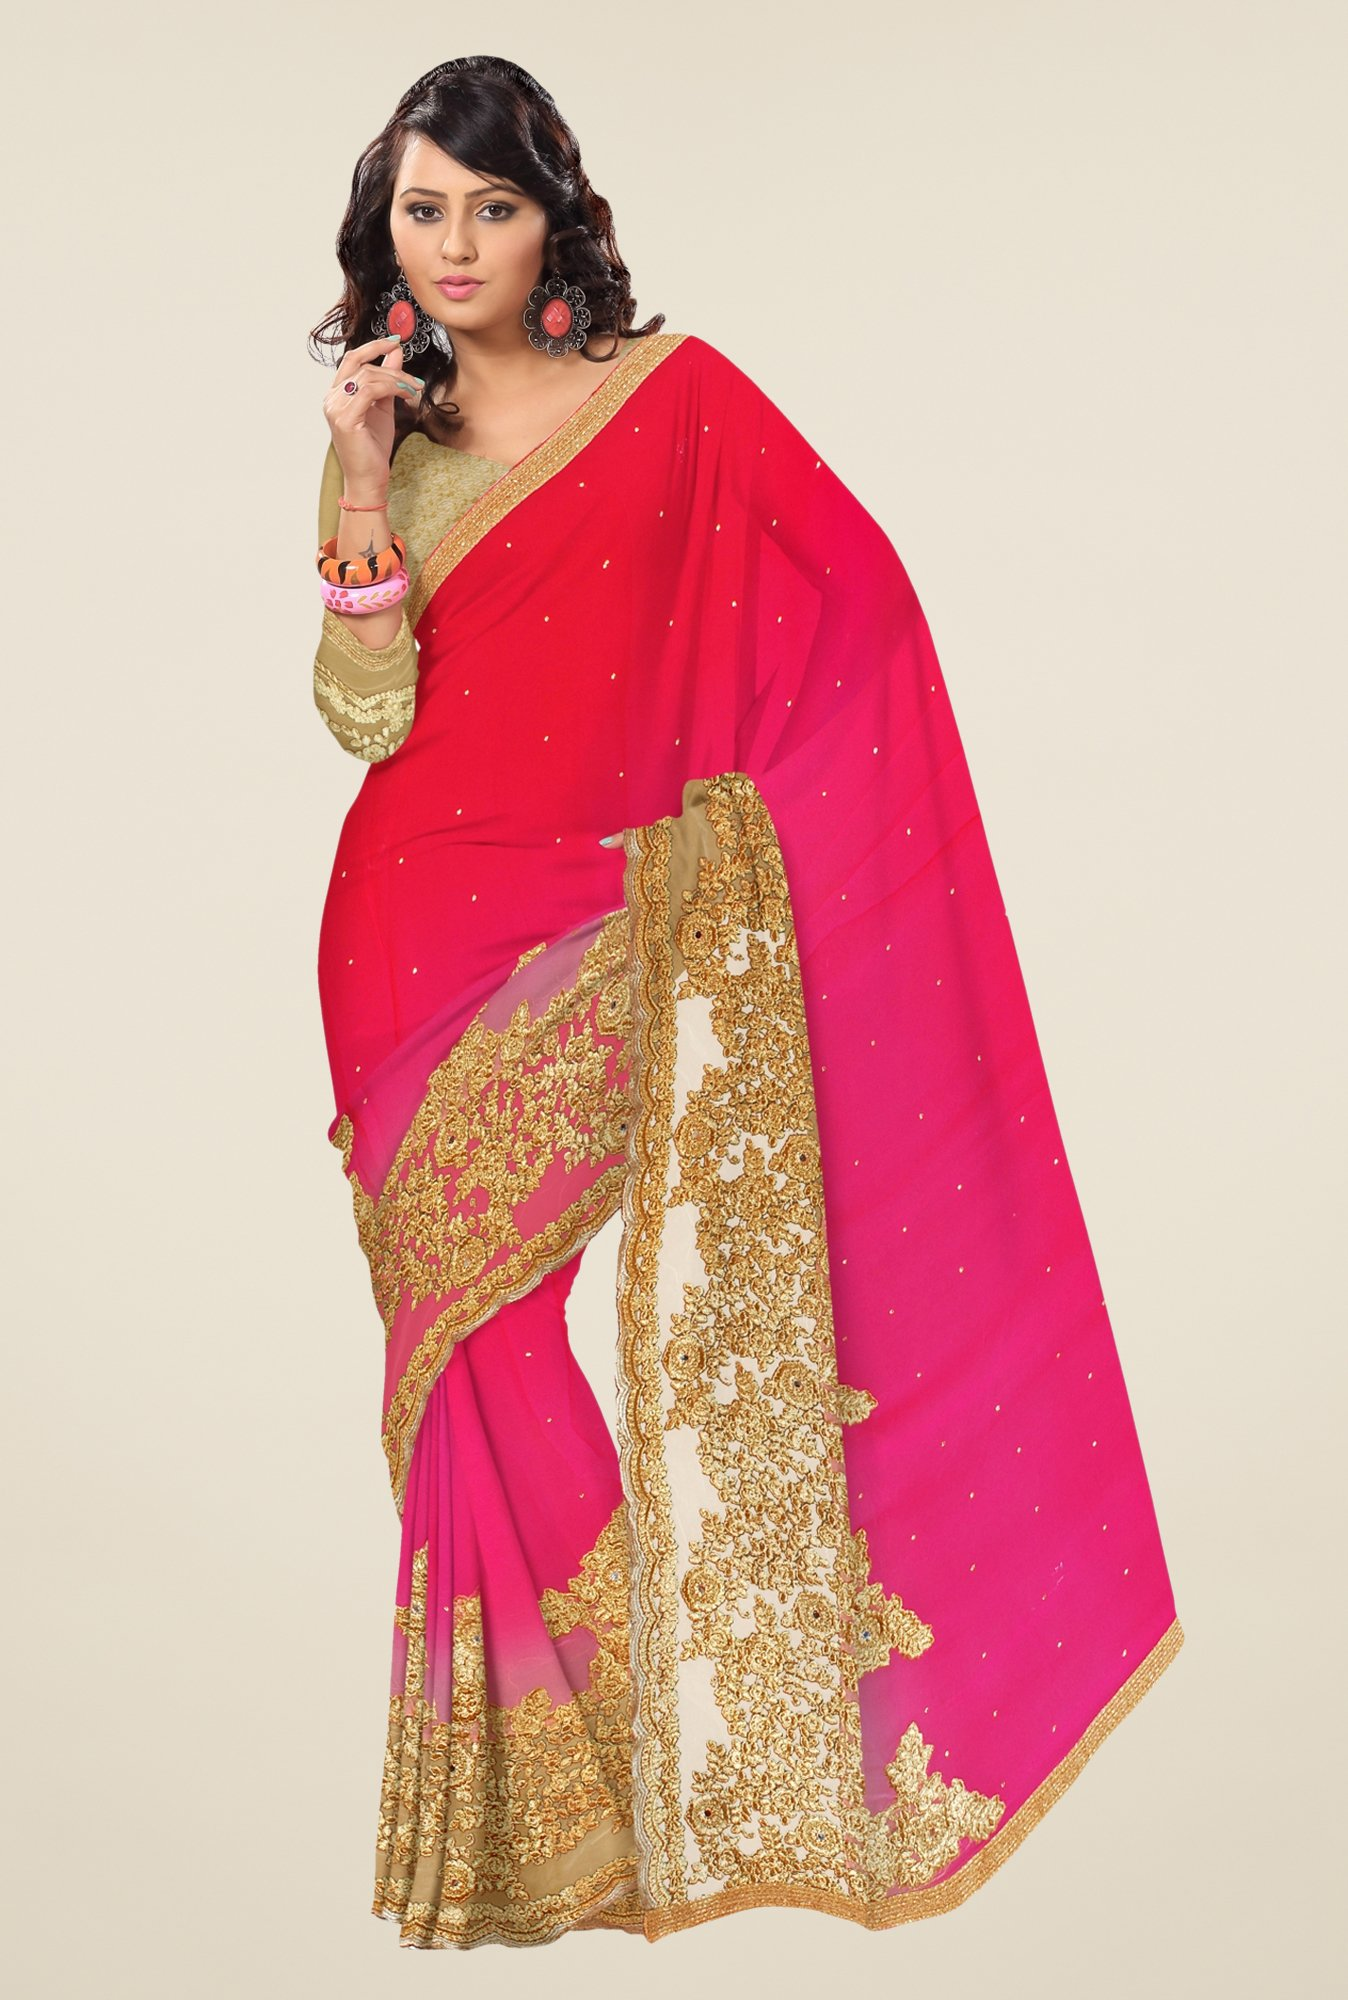 Triveni Magenta & Red Embroidered Faux Georgette Saree